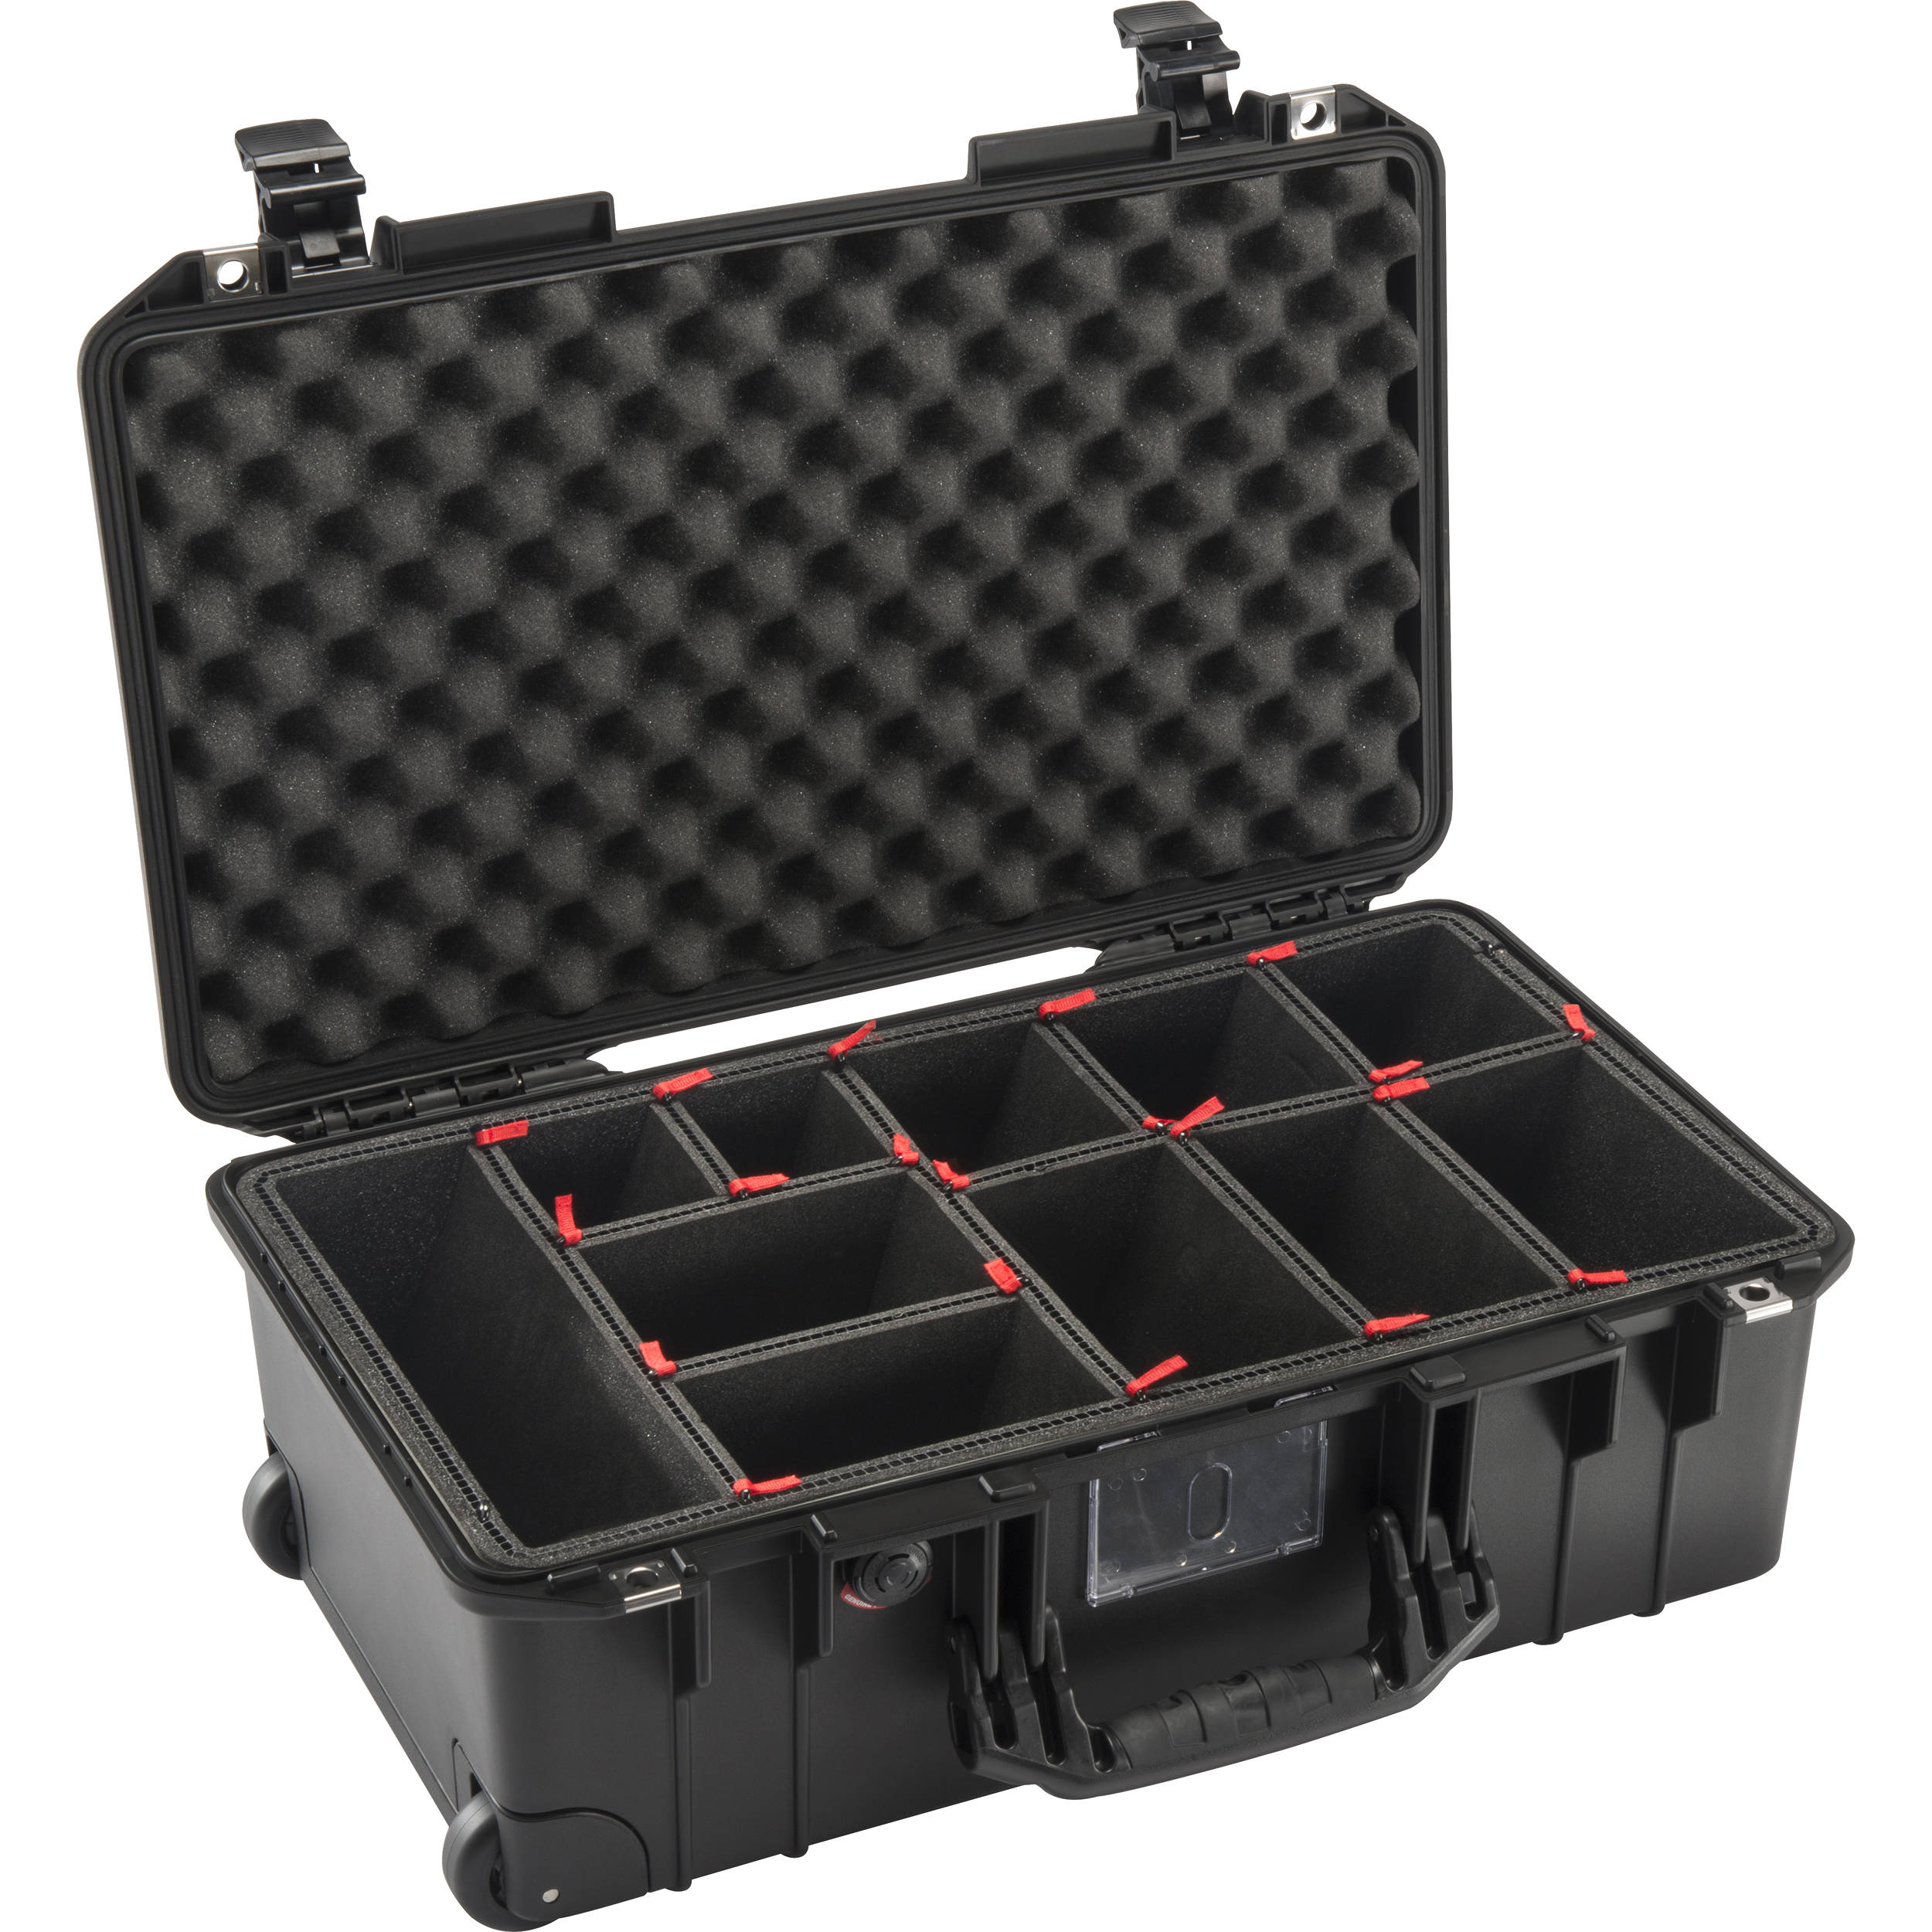 Pelican 1535 AirTP Wheeled Carry-On Case with TrekPak Insert (Black)